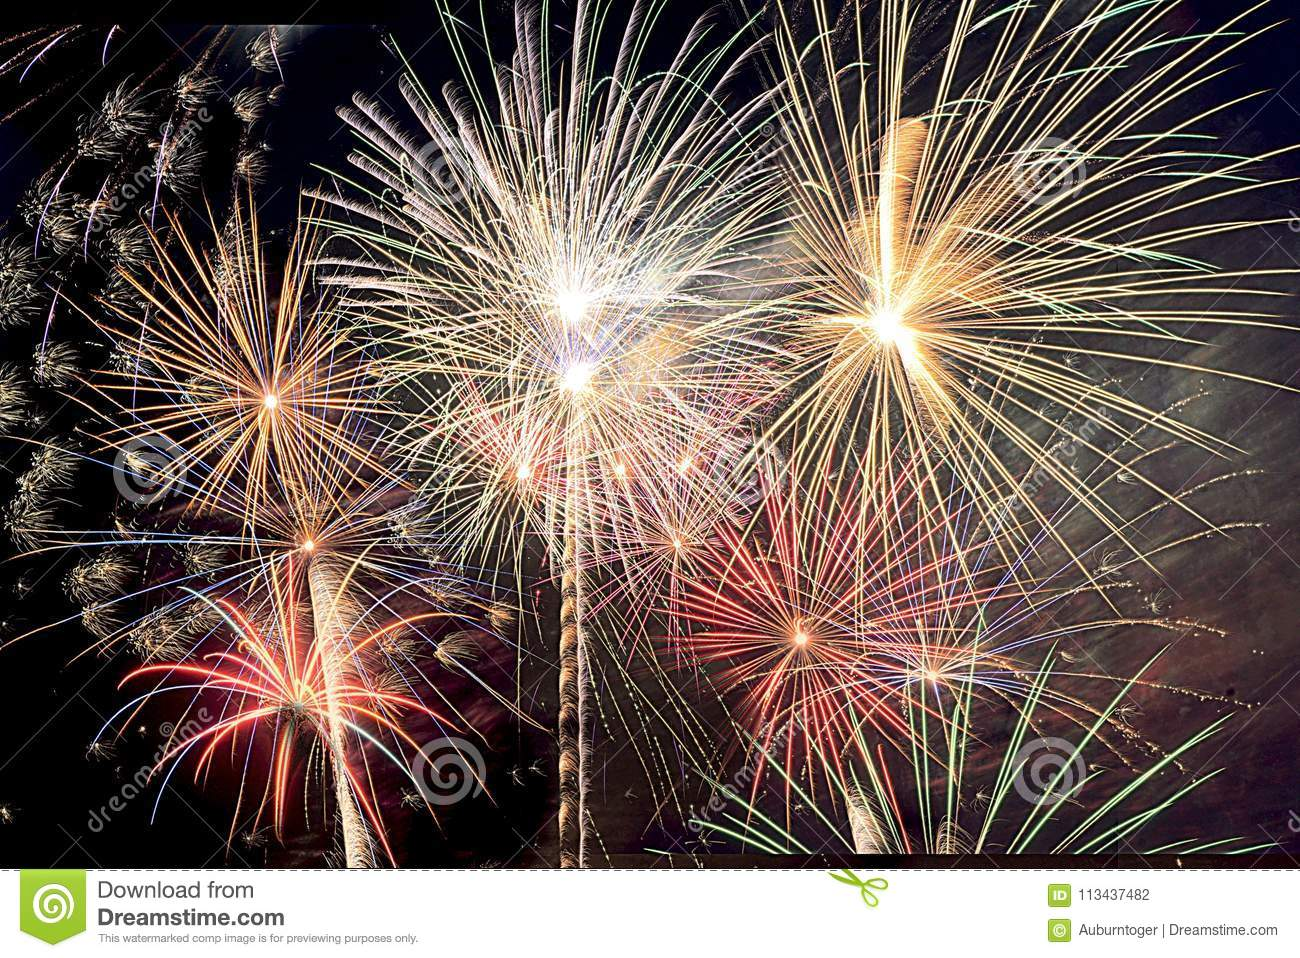 New Year`s Eve and Fourth of July Fireworks in South Florida cover the night sky with bursts of vibrant colors.